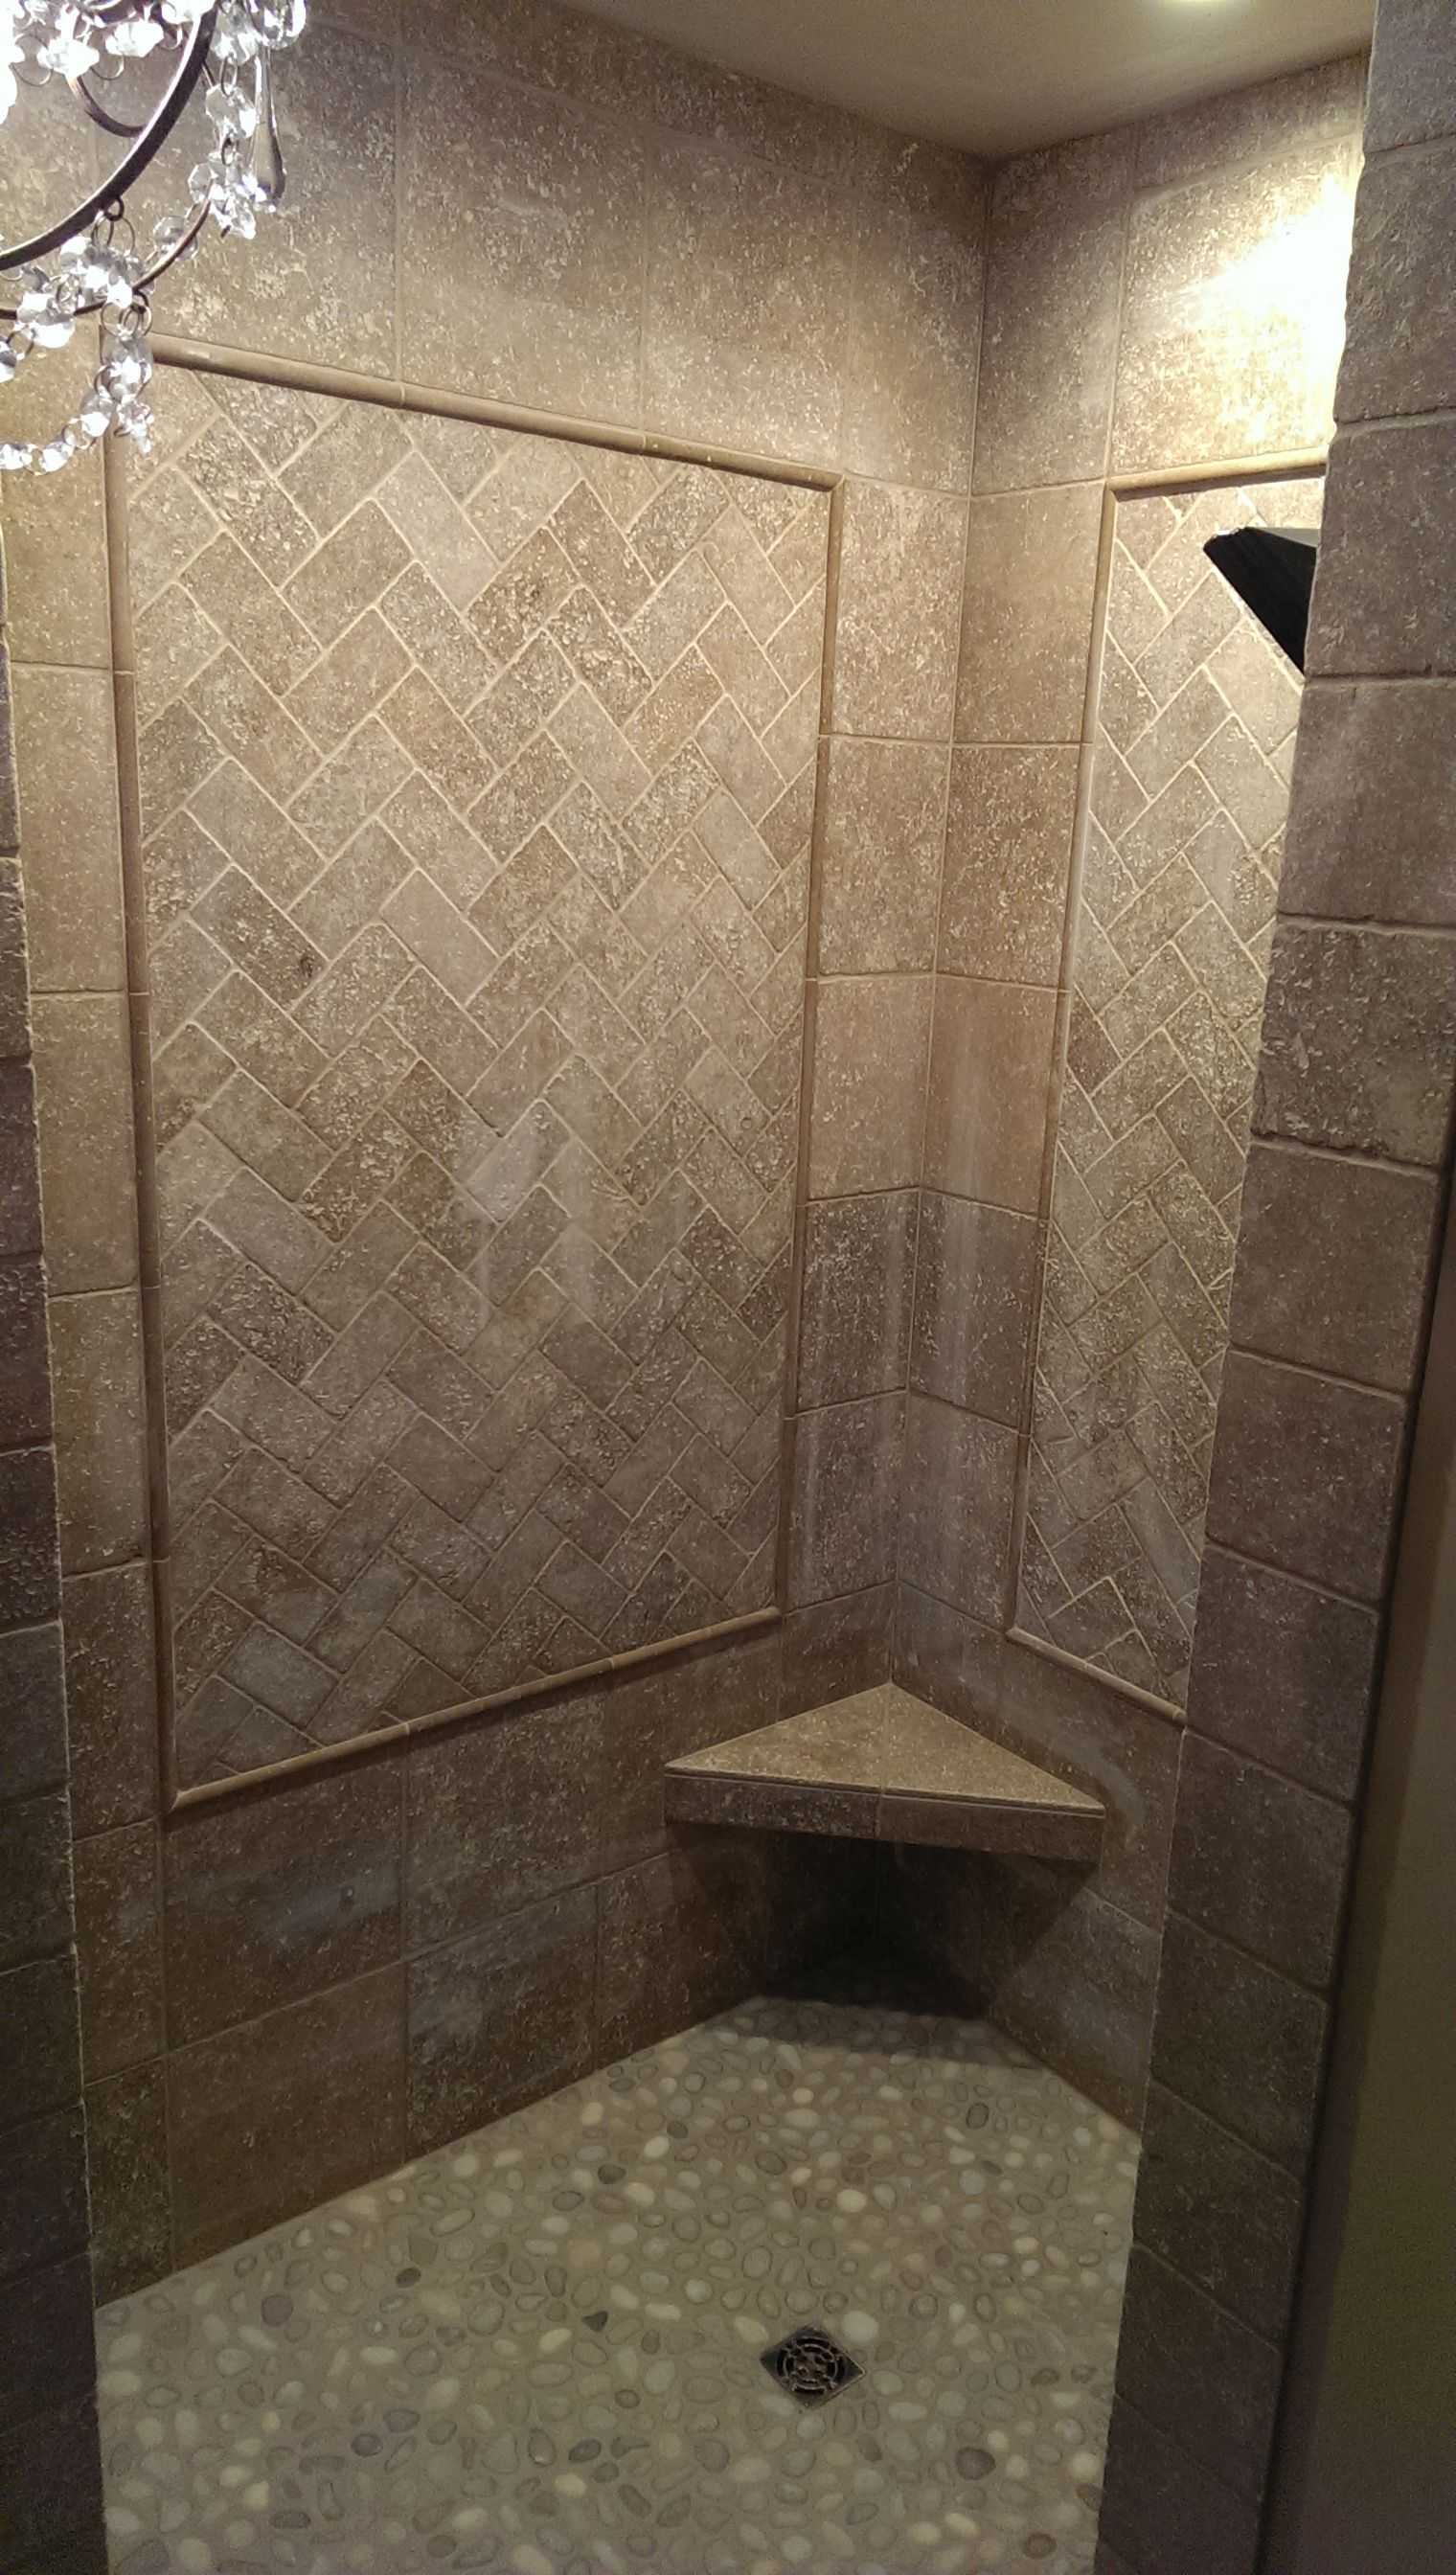 Open Shower Bathroom Tumbled Marble Pebble Floor Moen Dual Body Spray Valve Open